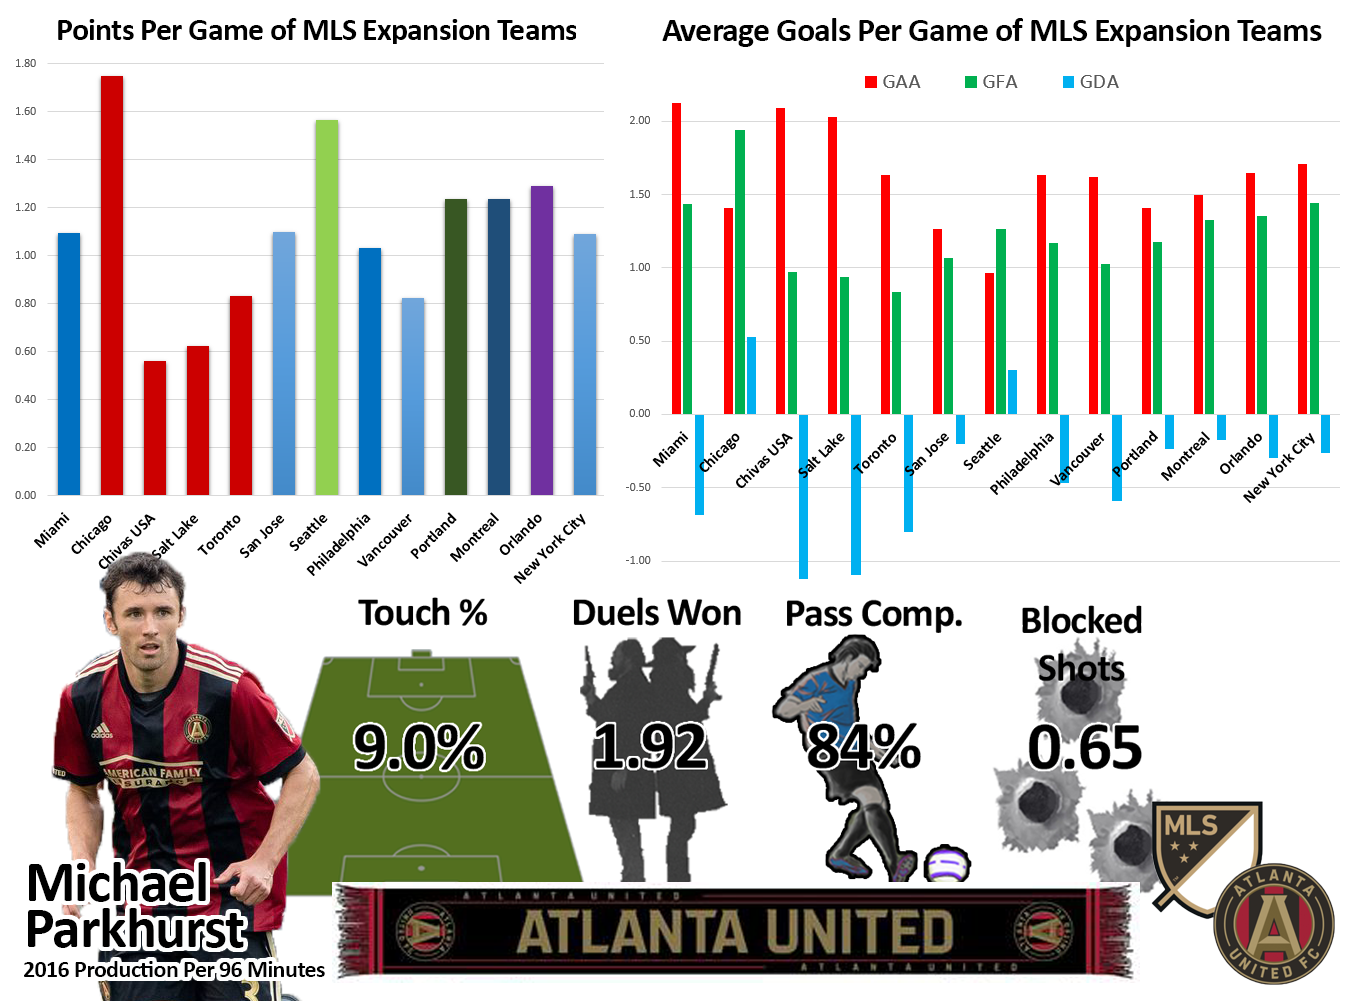 GAA: goals against average, GFA: goals for average, GDA: goal difference average. Player production is per 96 minutes because that is the average length of an MLS game. Touch percentage is percentage of total team touches while the player is on the field. That, plus lots of other metrics can be found on our  Player xG 2016 table.